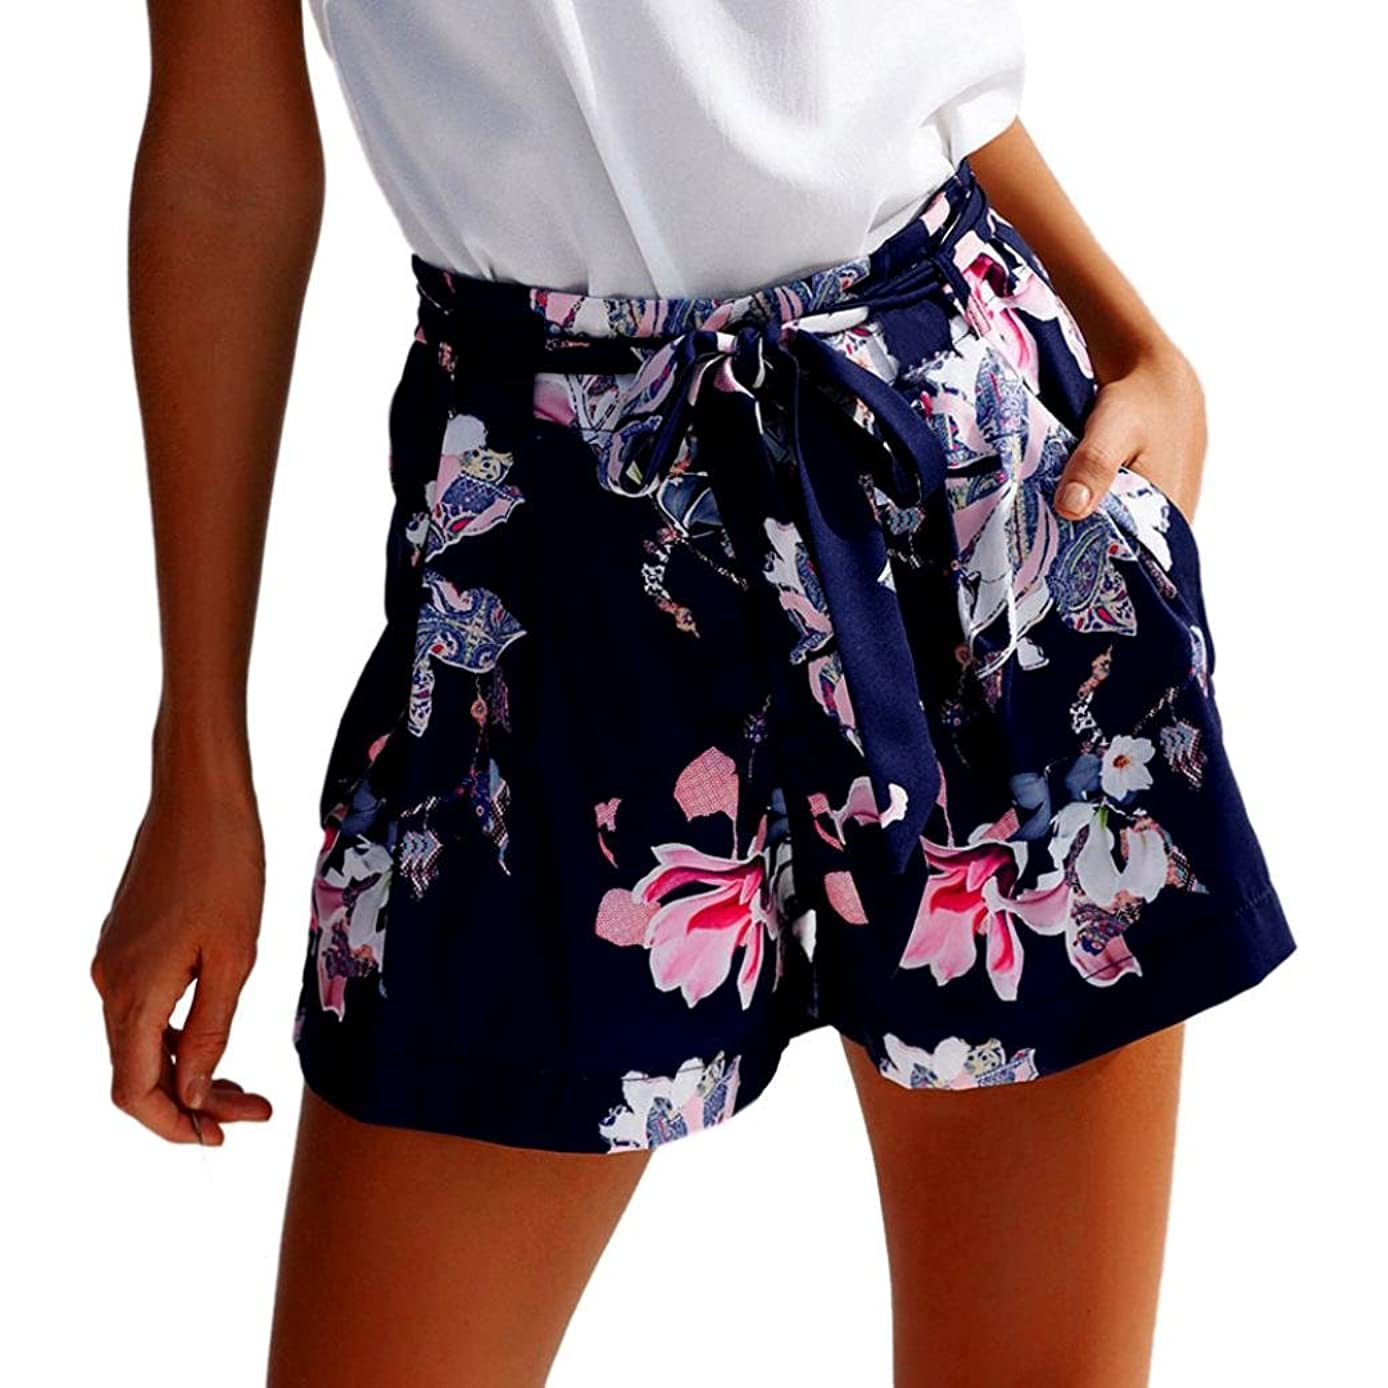 Shorts for Women, Clearance! Paymenow 2018 New Women Summer Shorts Floral Print Casual Walking Jersey Shorts Pants